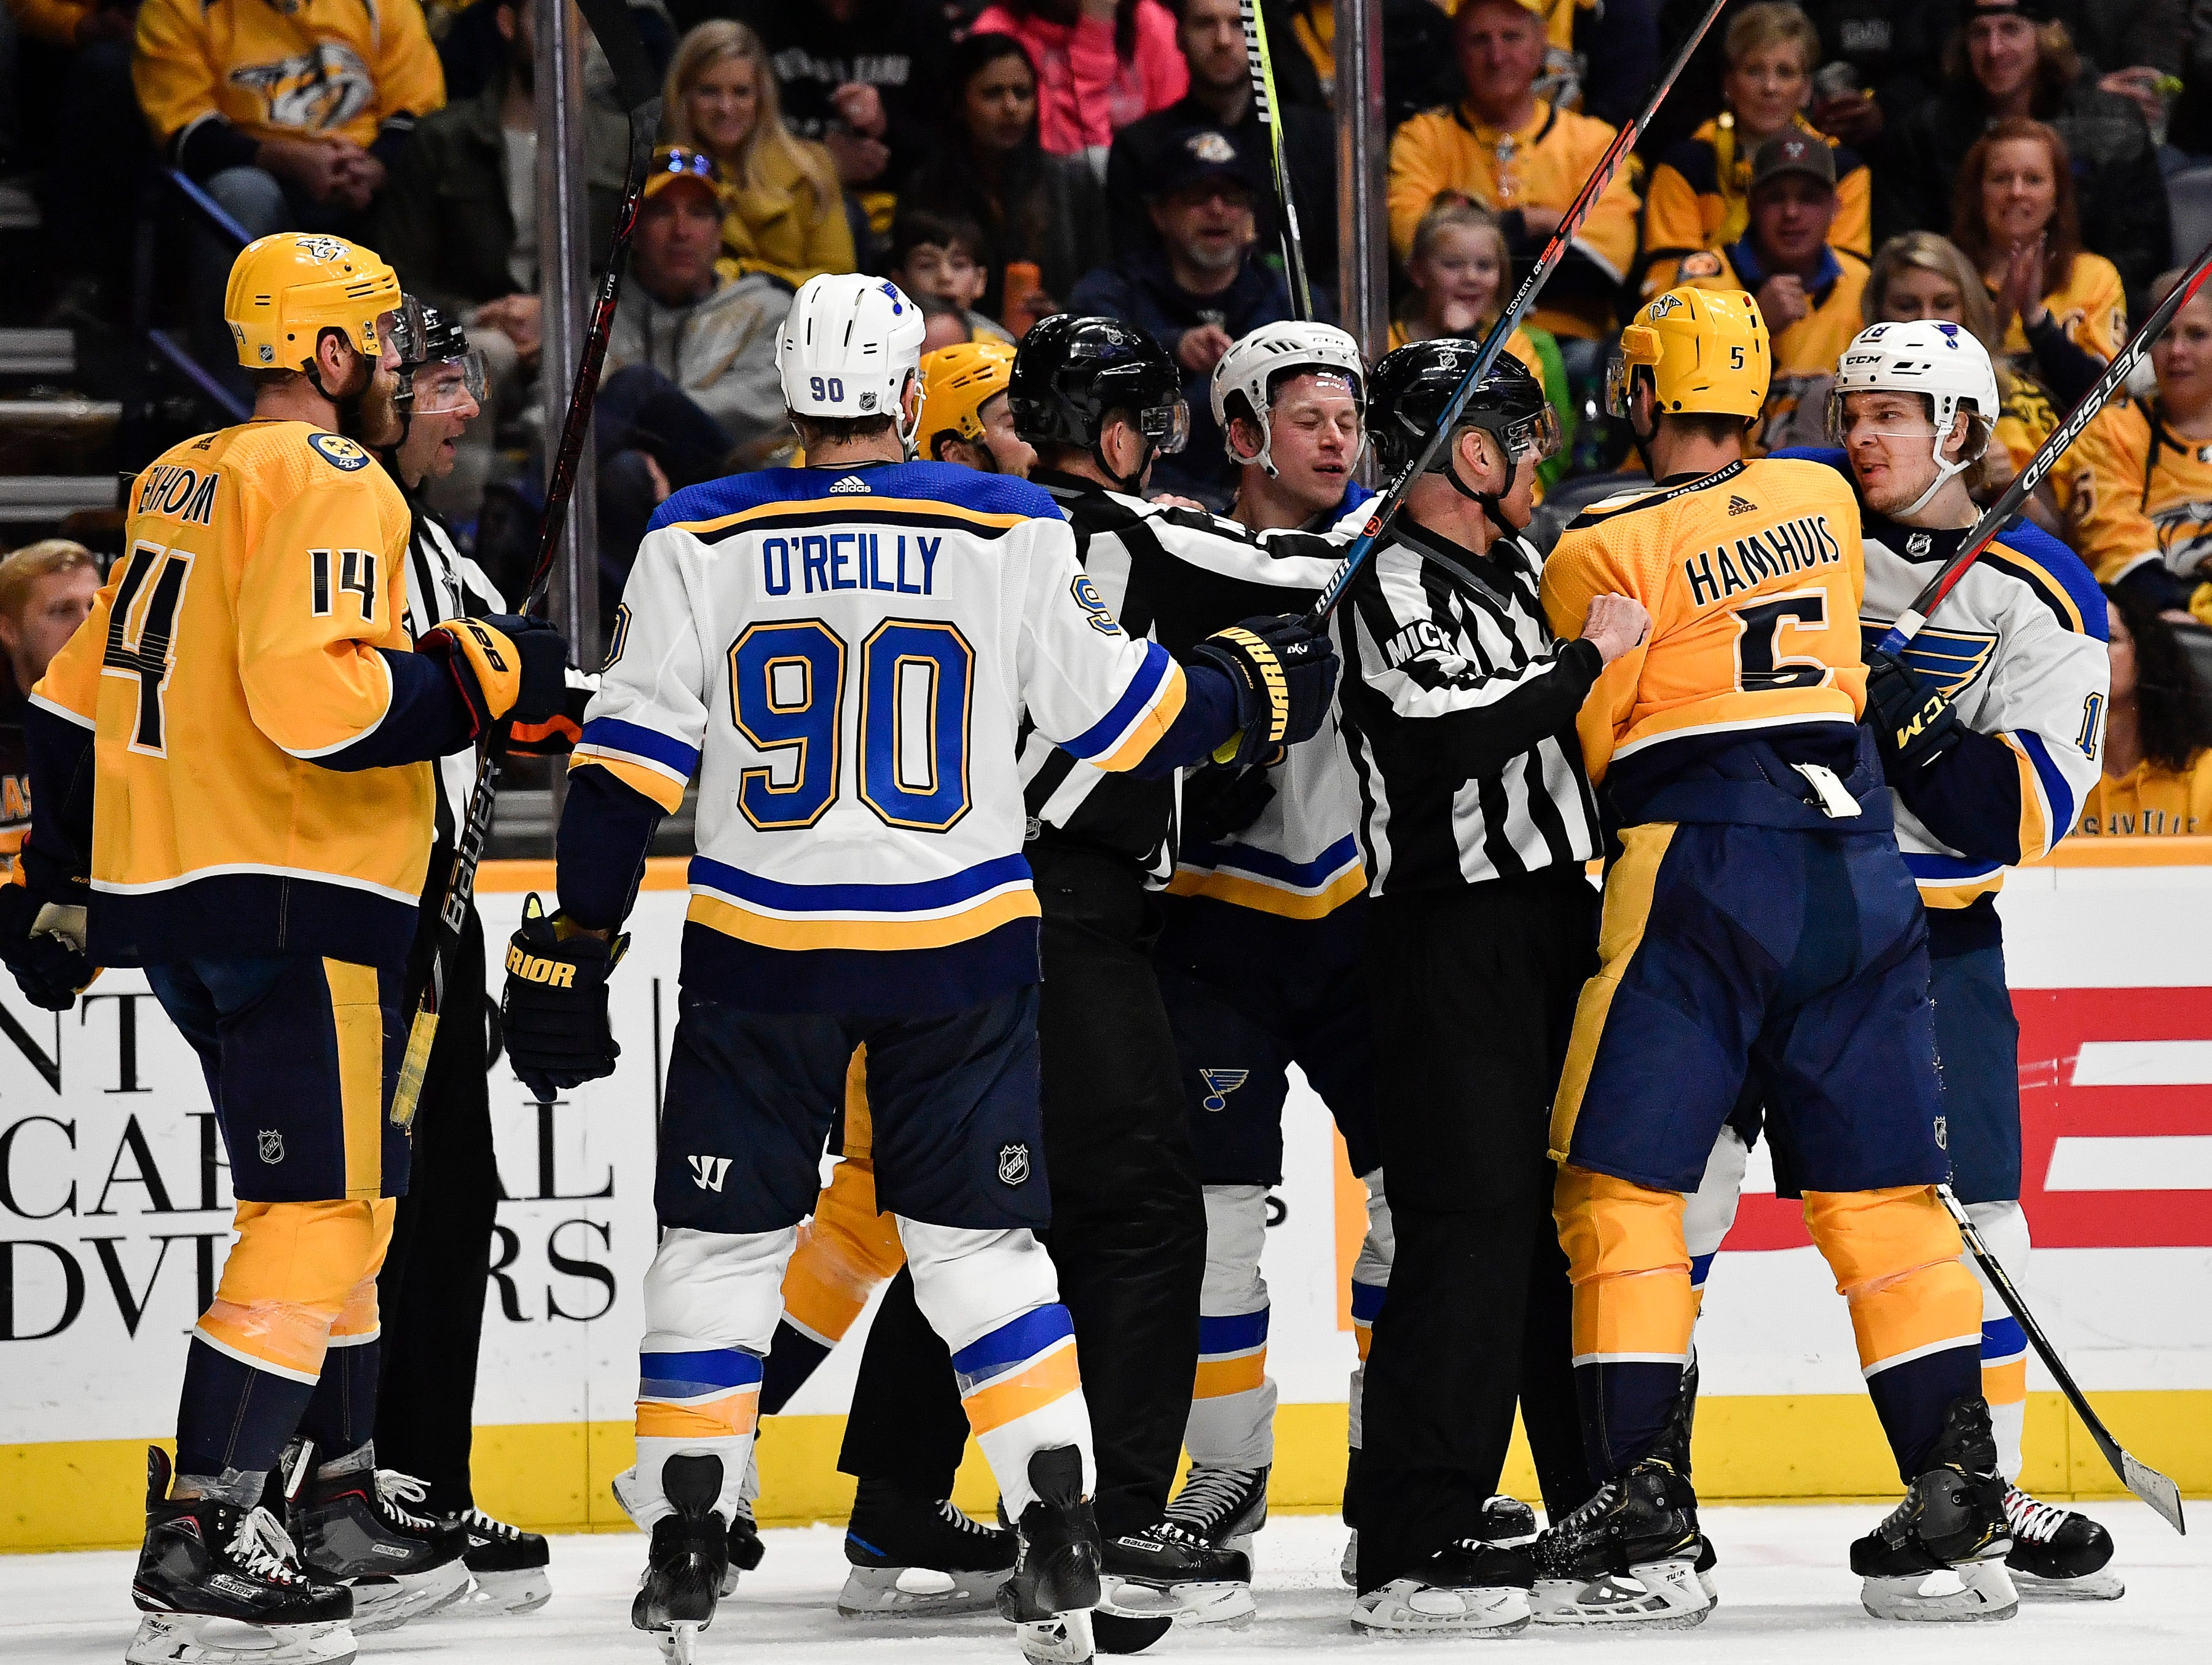 Referees separate Blues players and Predators players as they scuffle during the second period at Bridgestone Arena Sunday Feb. 10, 2019 in Nashville, Tenn.